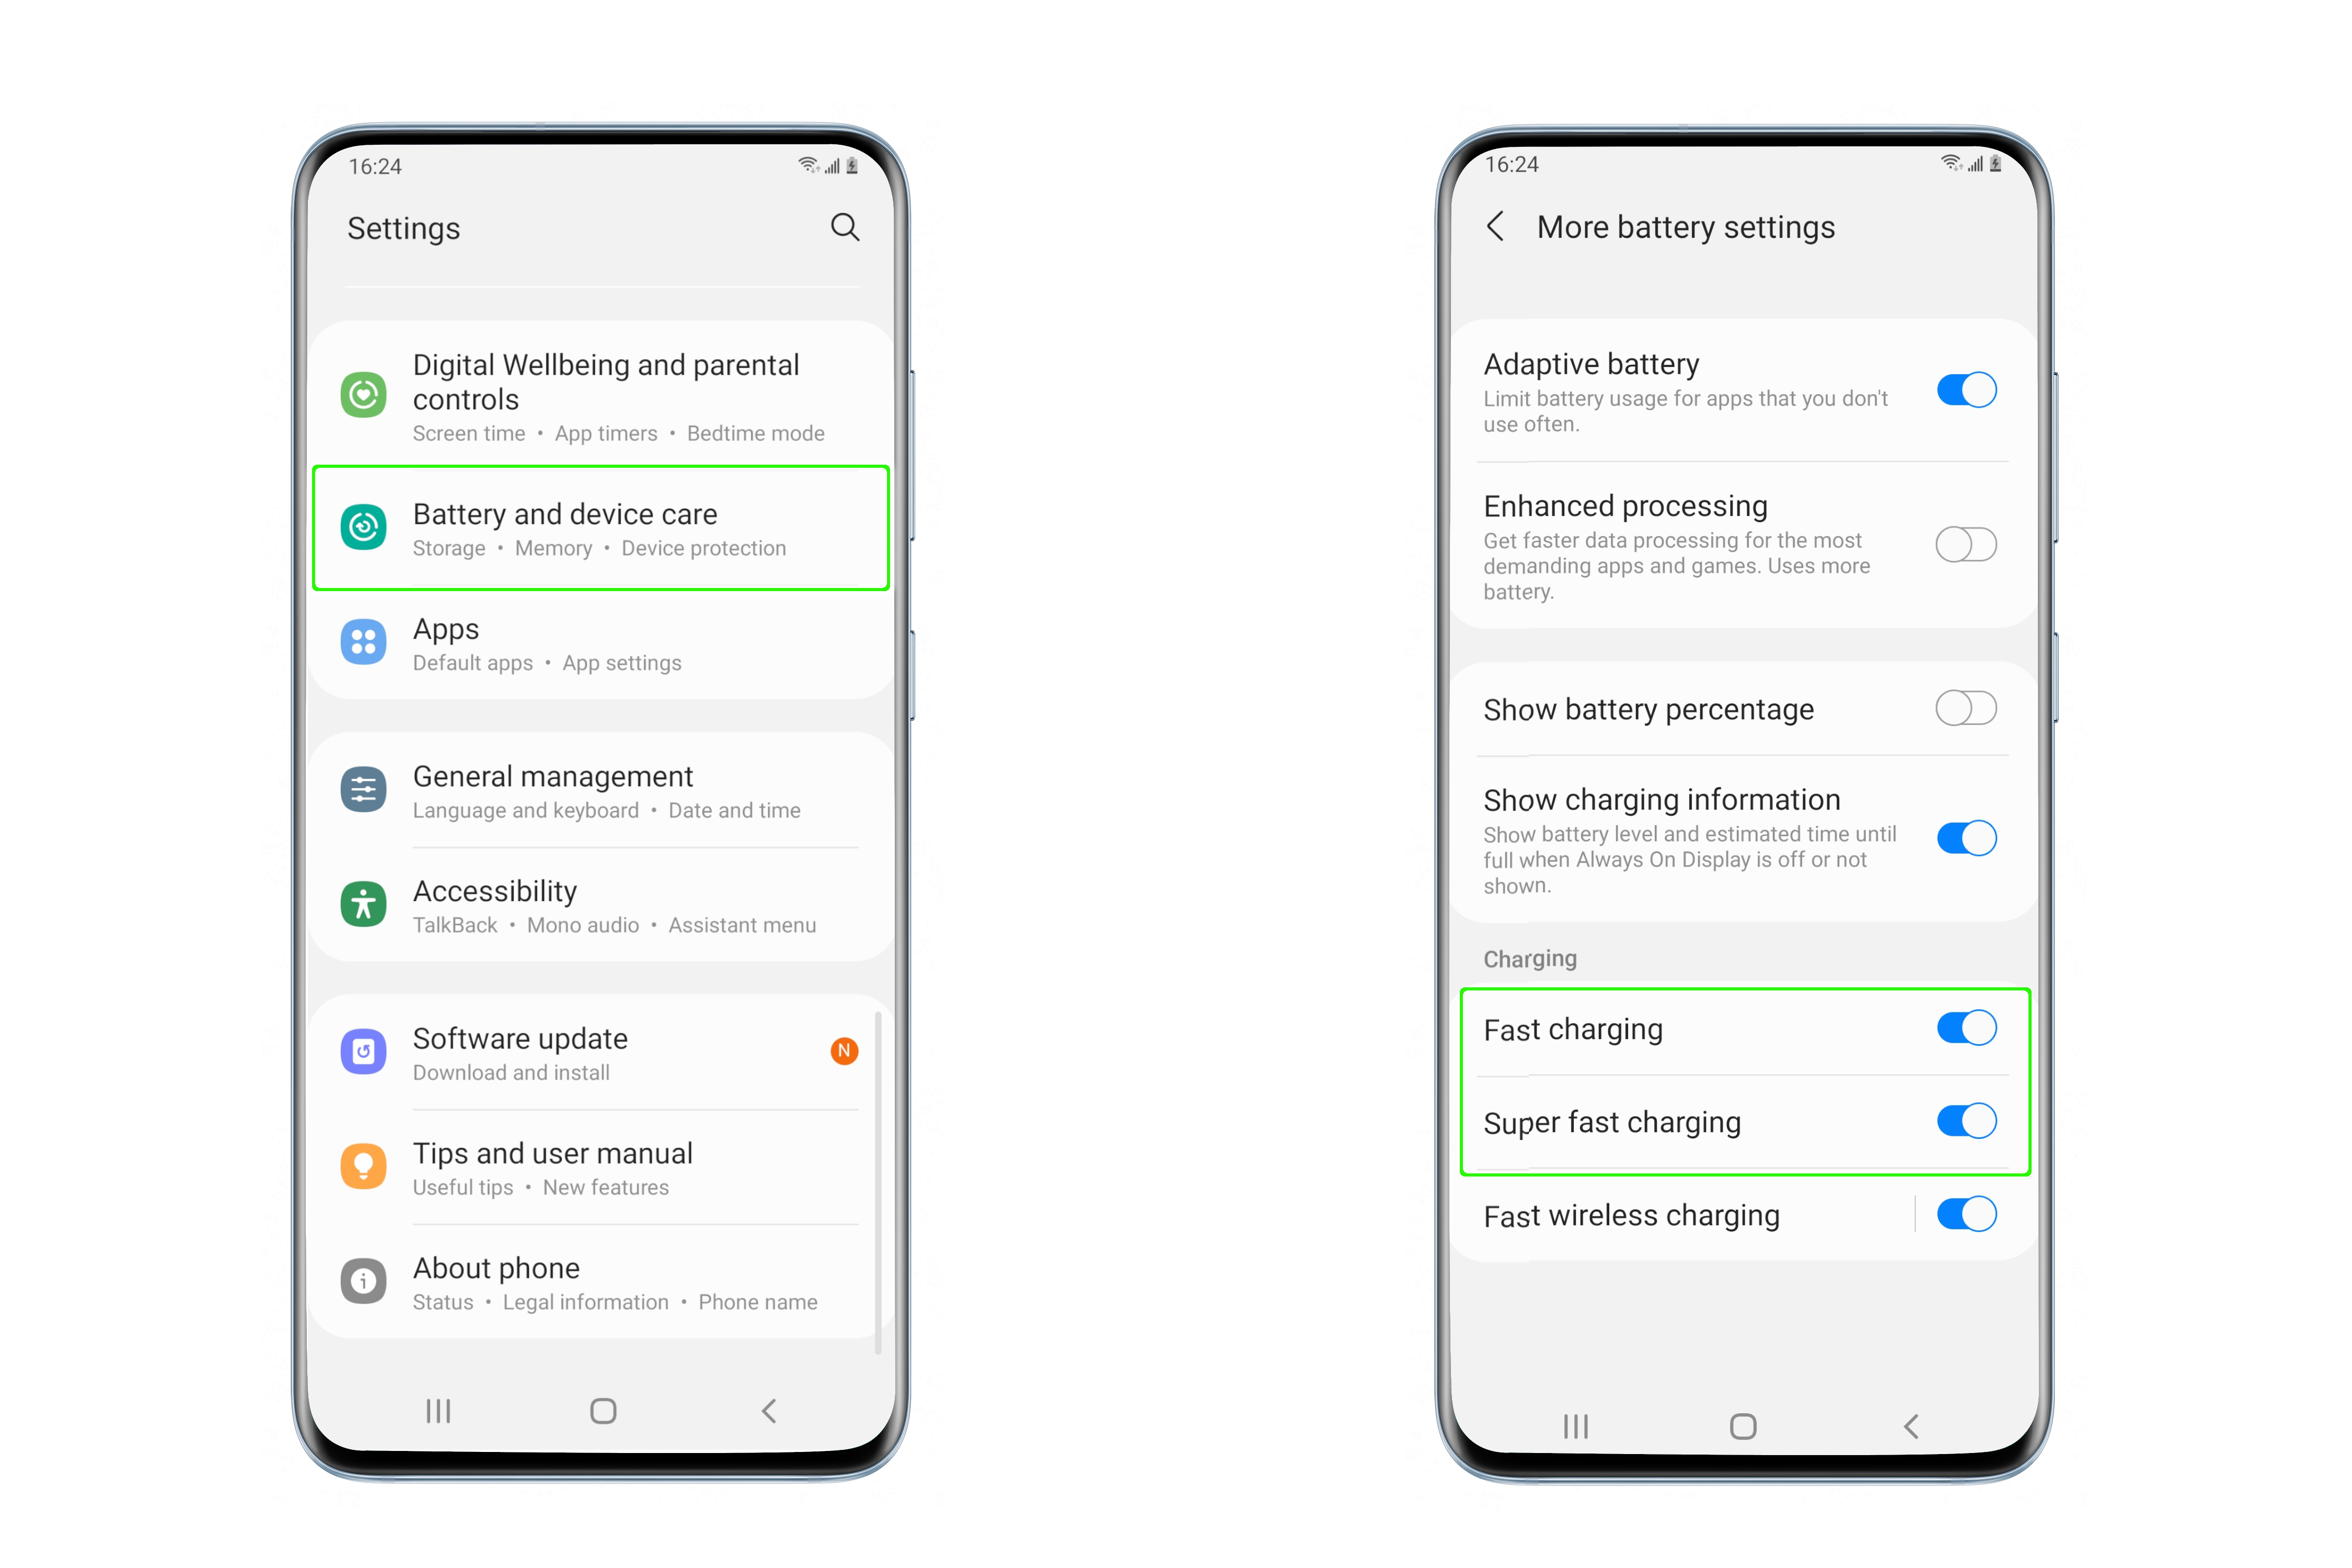 Two screenshots illustrating the steps to enable fast charging on Samsung S21